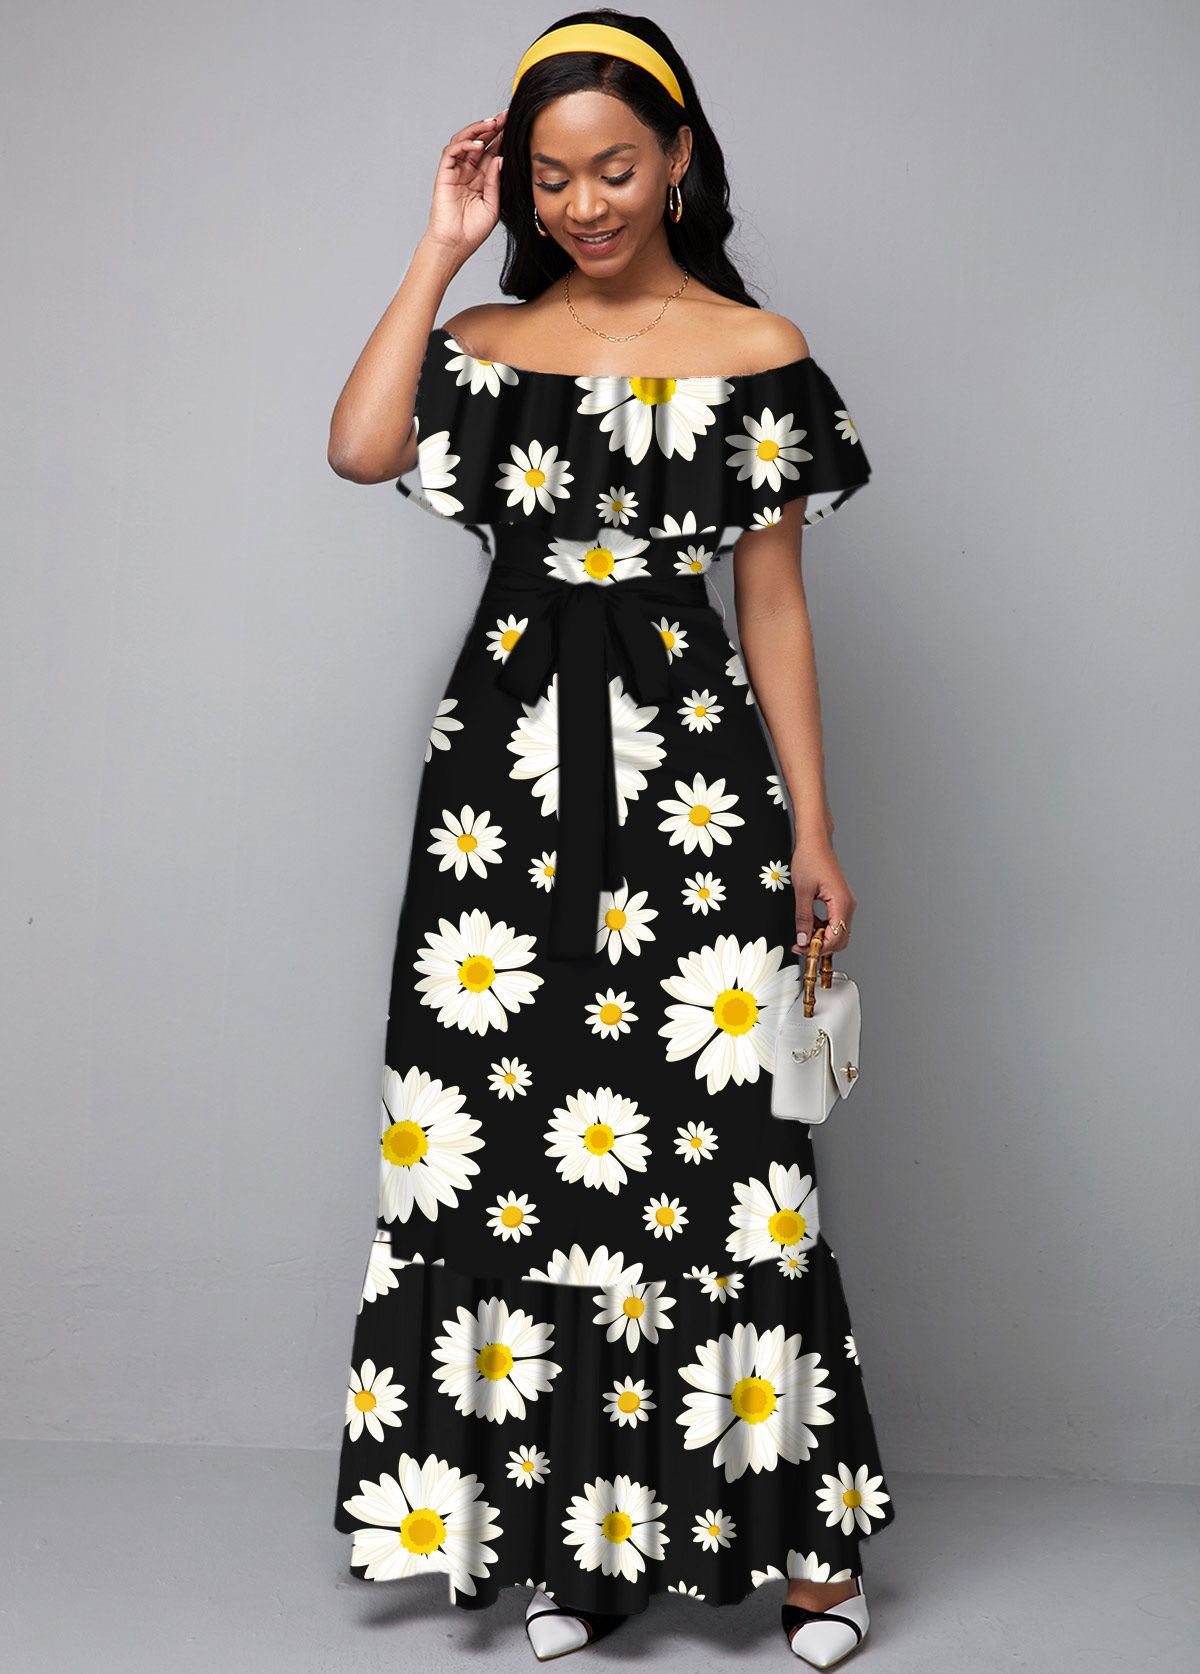 ROTITA Daisy Print Off the Shoulder Ruffle Overlay Dress